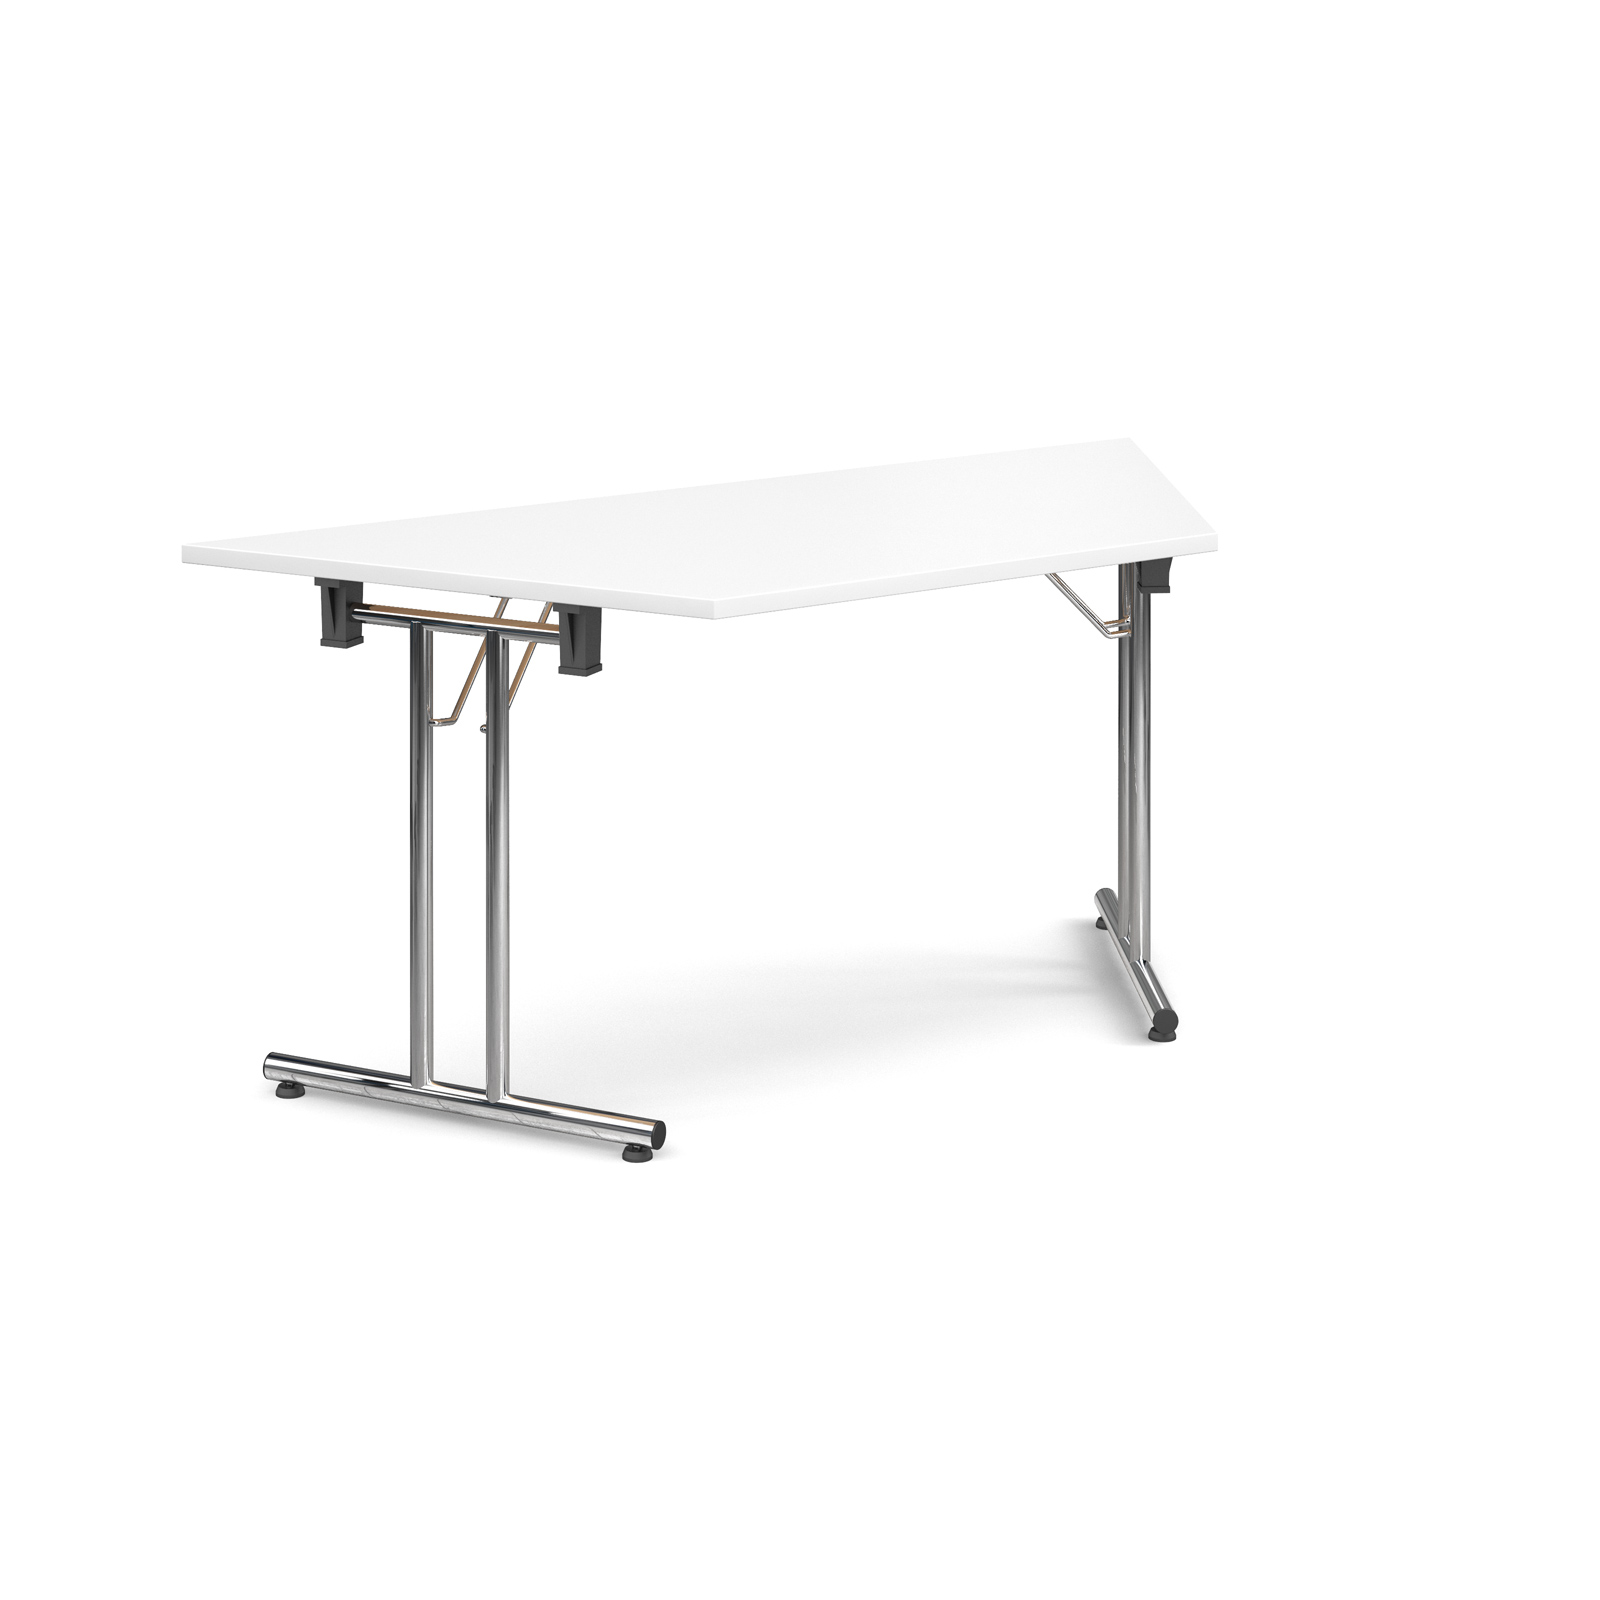 Trapezoidal deluxe folding leg table 1600mm x 800mm - white